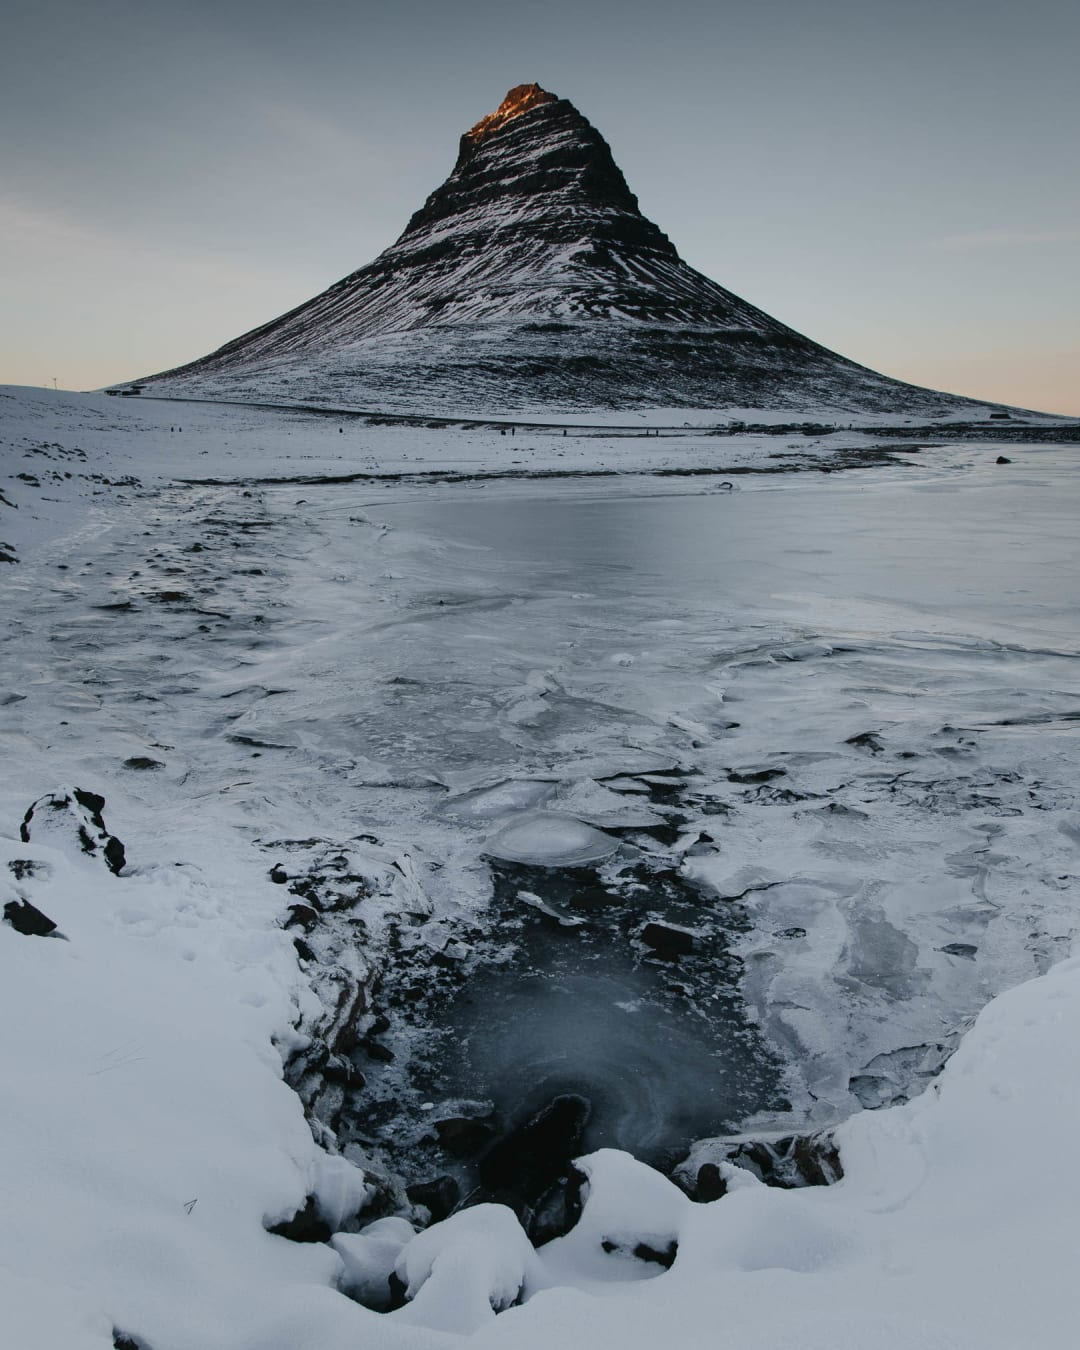 ice and snow at the foot of Kirkjufell mountain at sunset landscape photography of Iceland